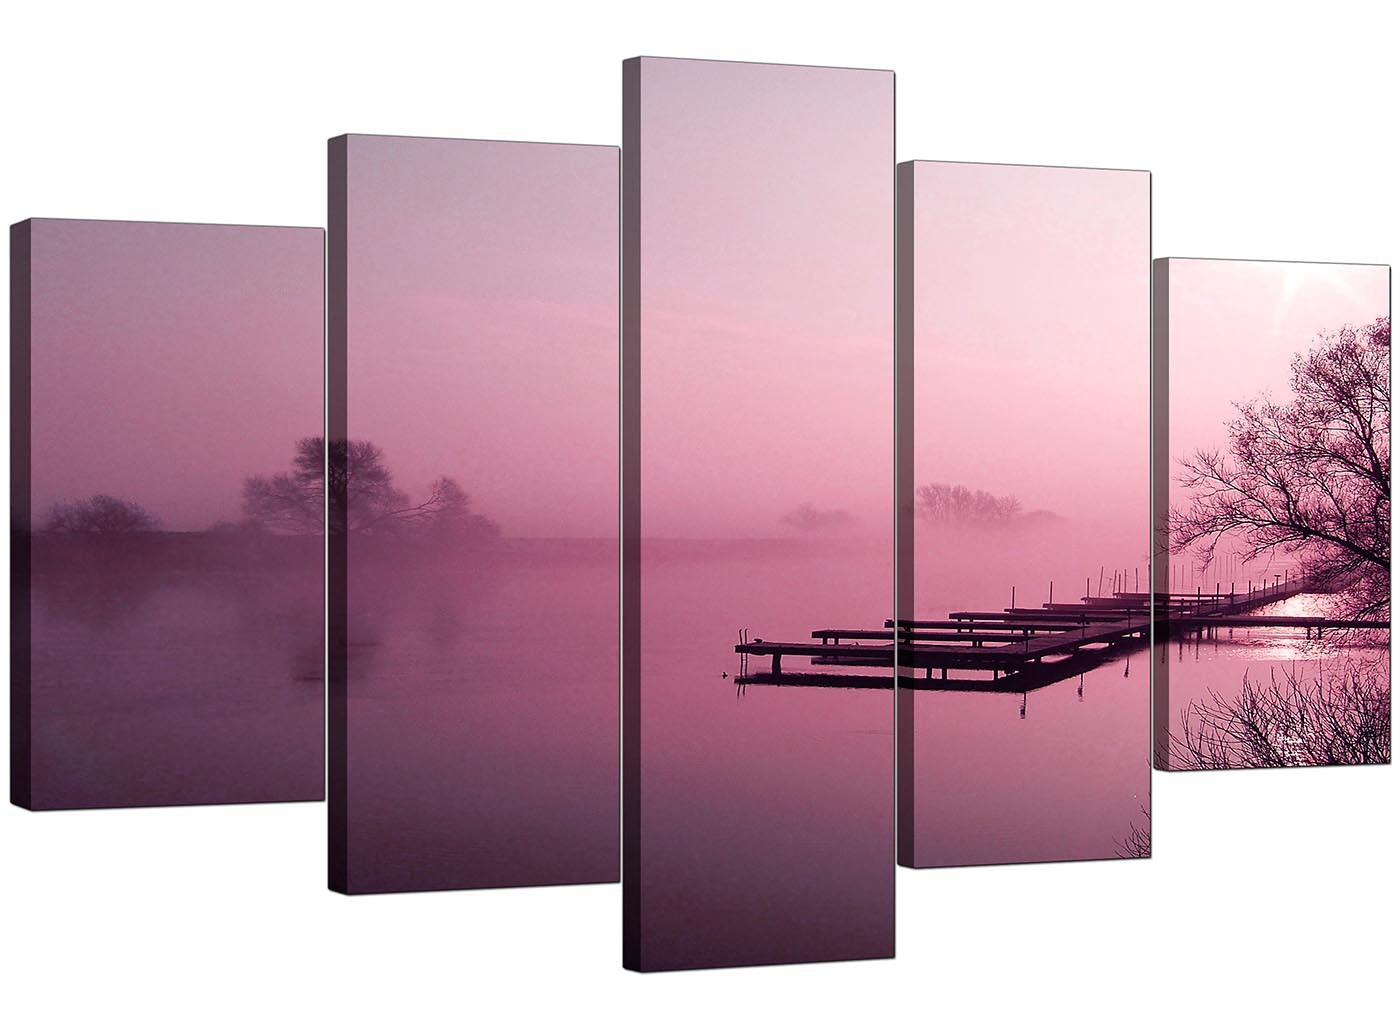 Extra Large River Landscape Canvas Wall Art 5 Panel In Plum